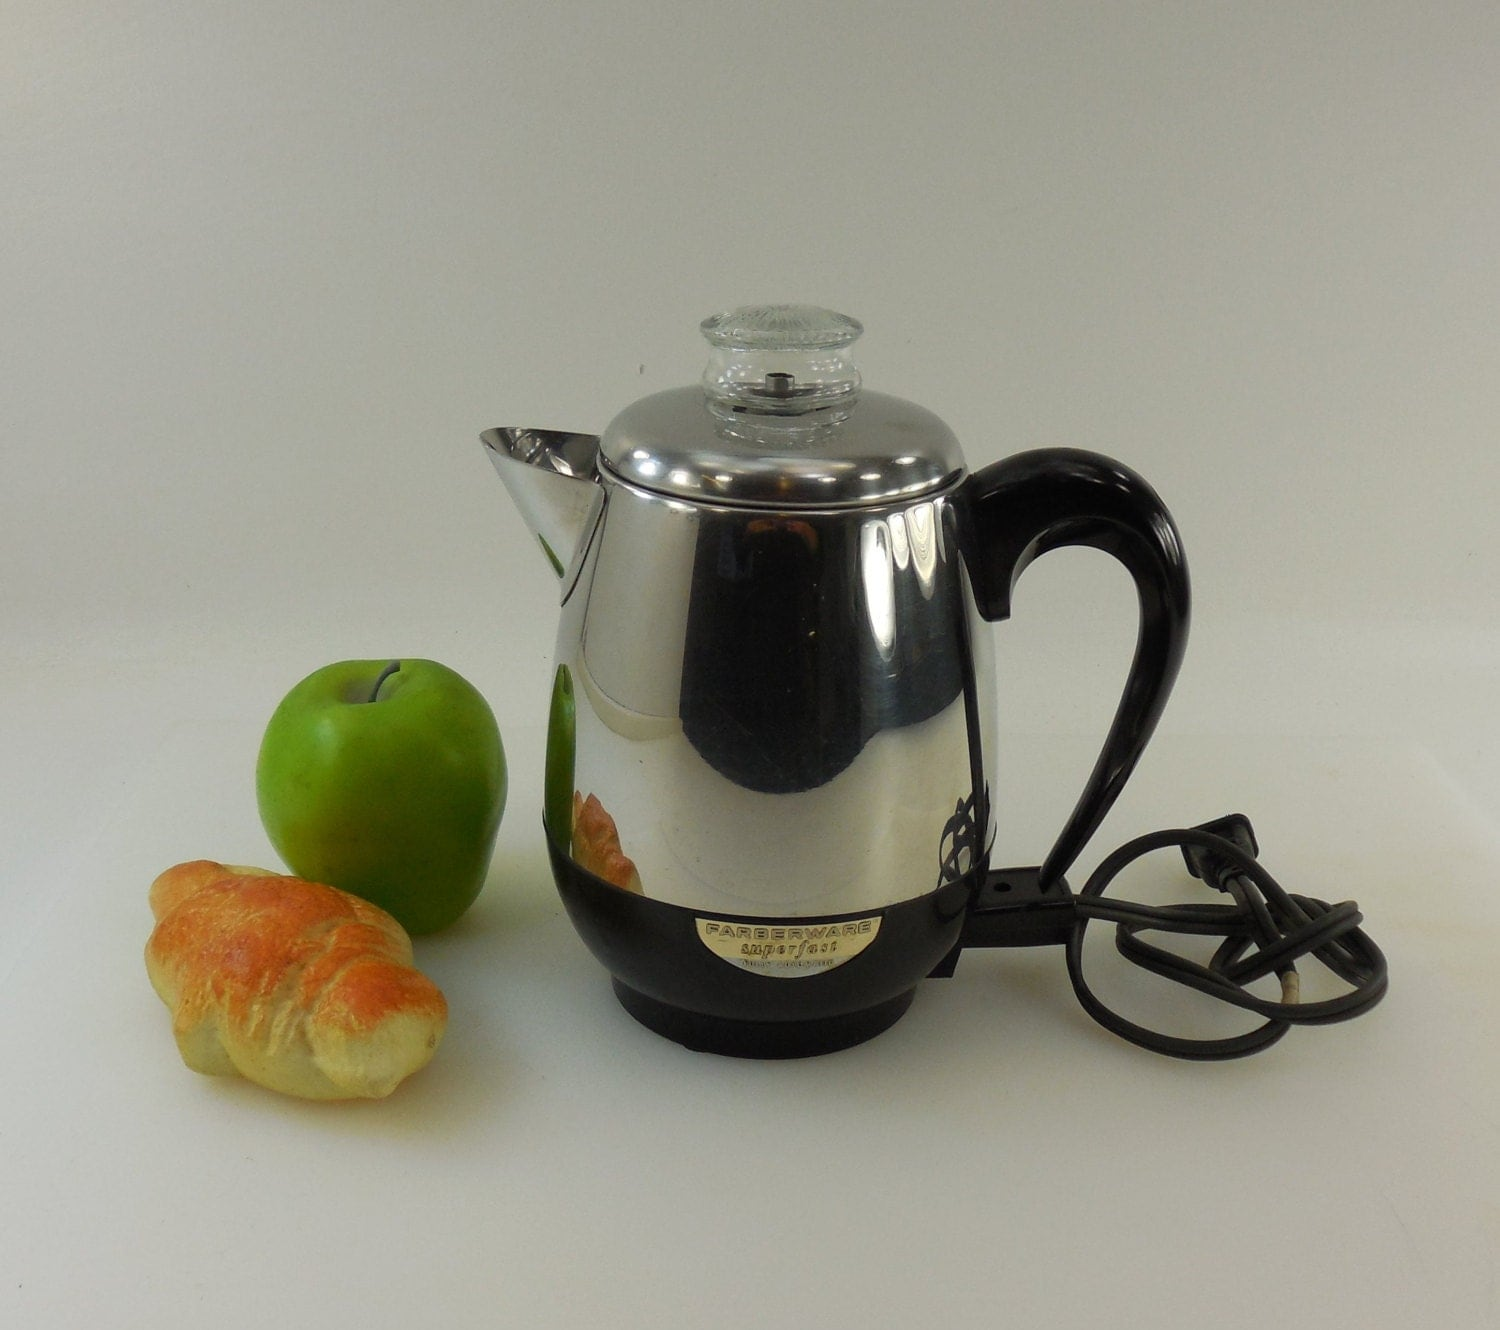 Farberware Coffee Maker Cleaning : Farberware Coffee Pot Superfast Stainless Percolator 2-4